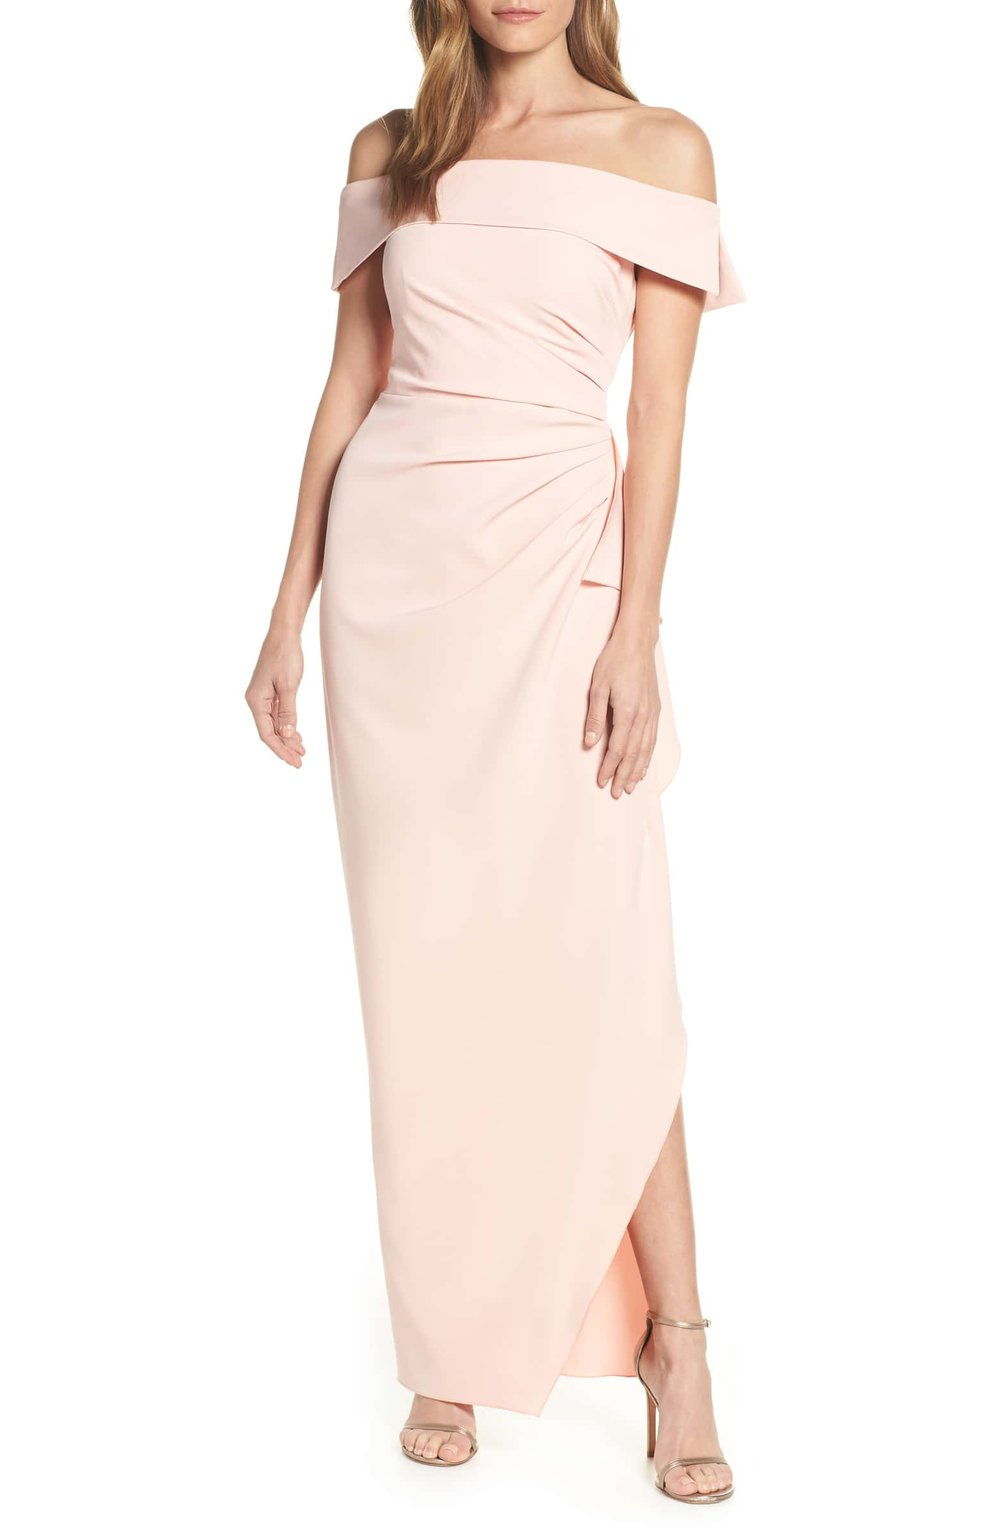 vince camuto blush gown.jpg